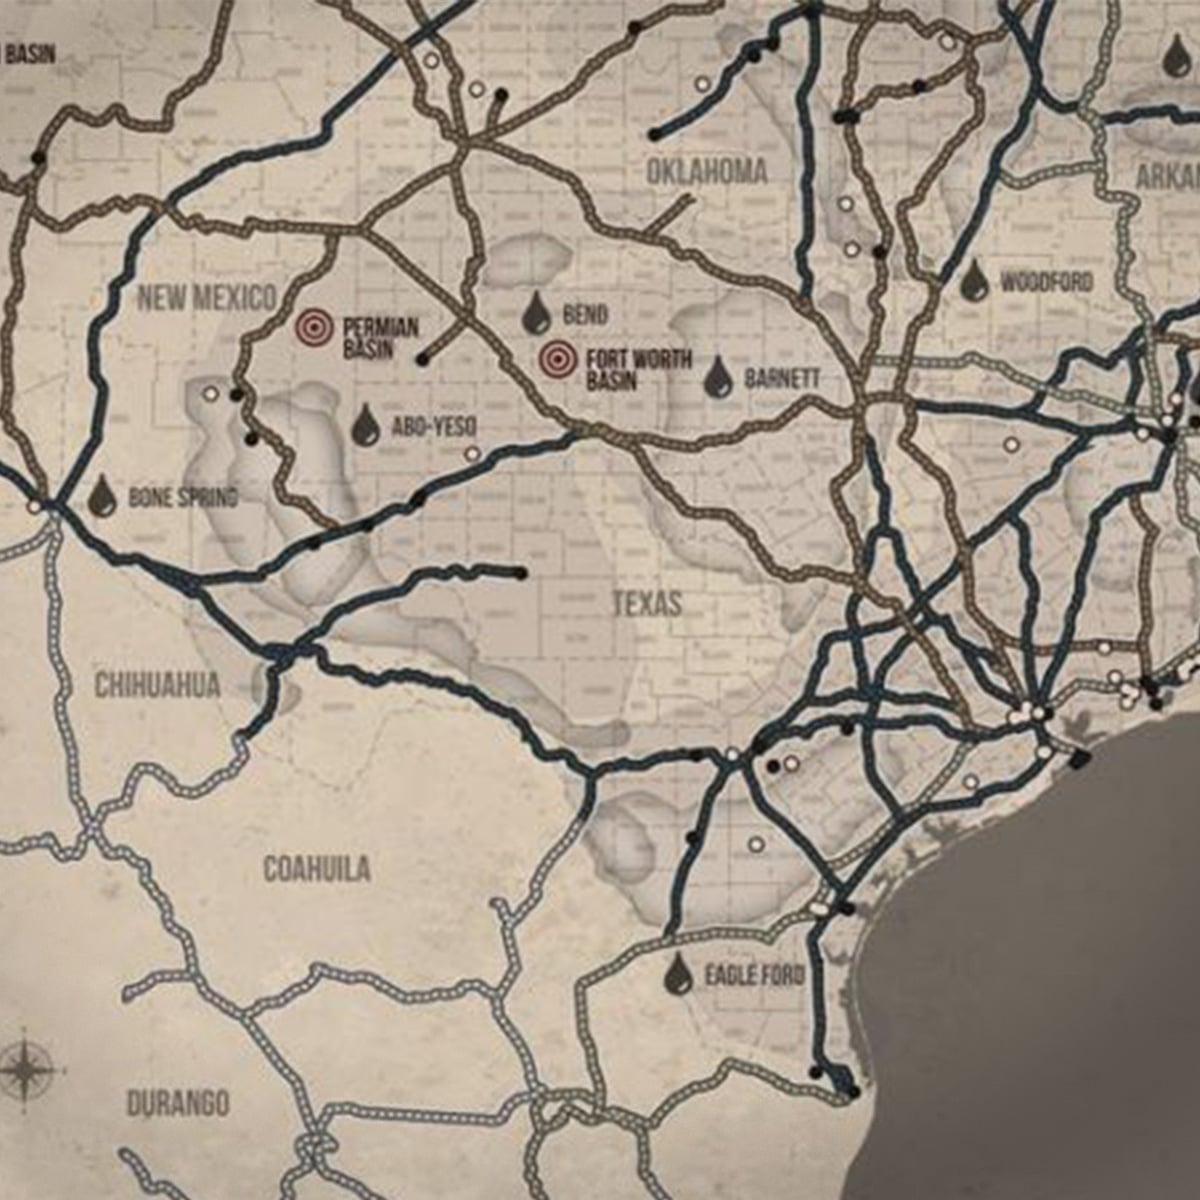 Texas Railroad Map & Oil Plays Map